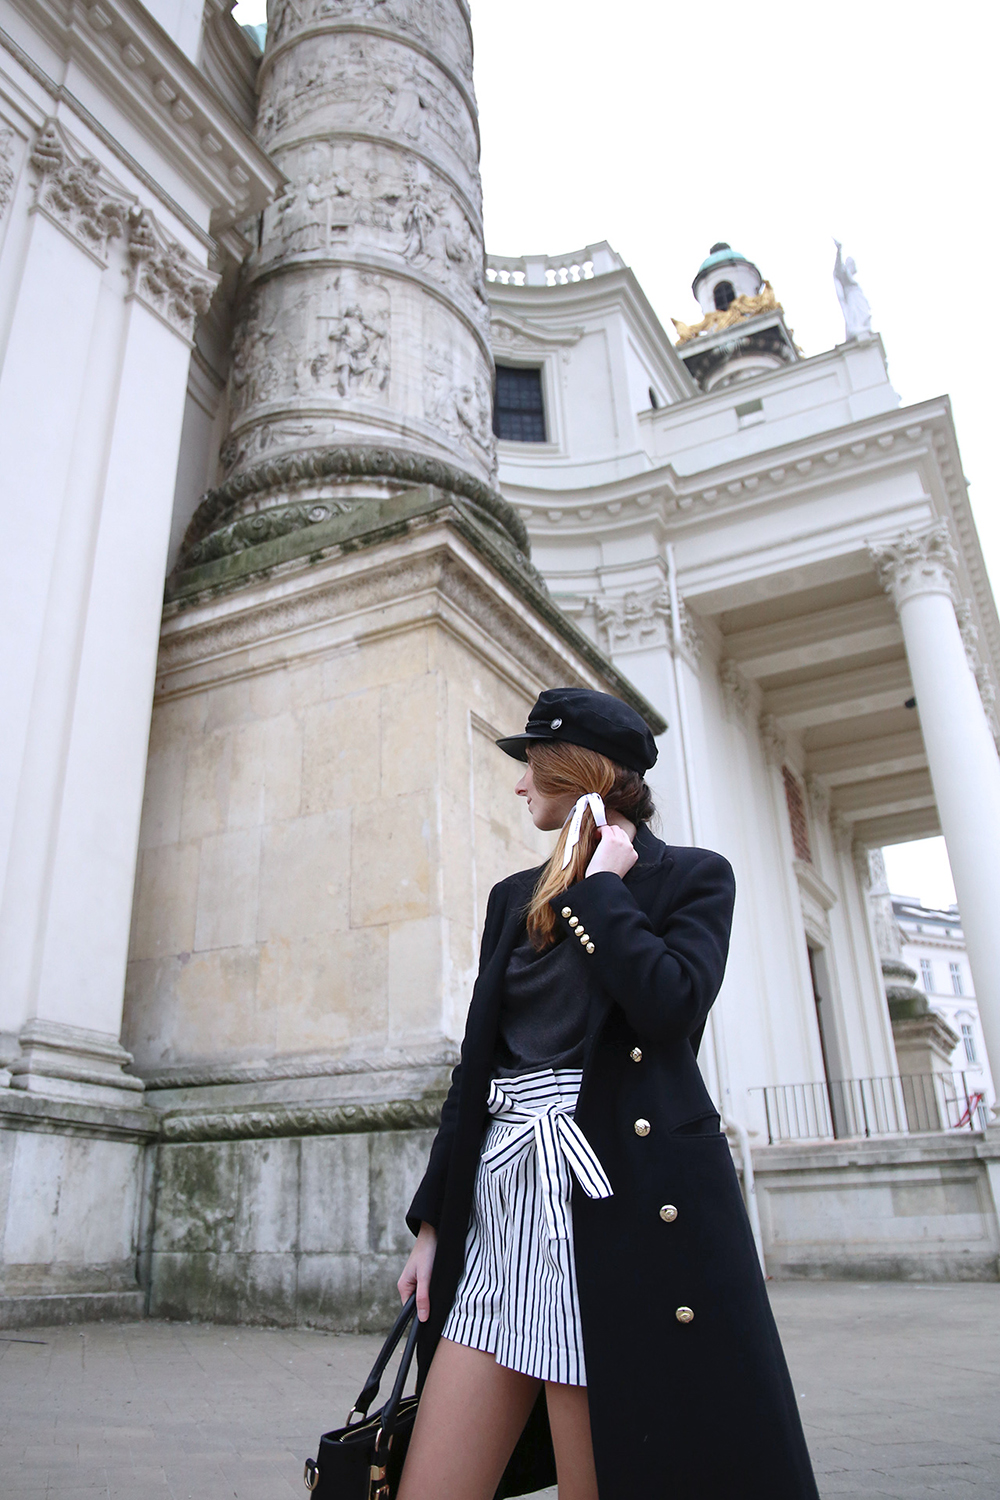 Maritime outfit with bows | that kind of style